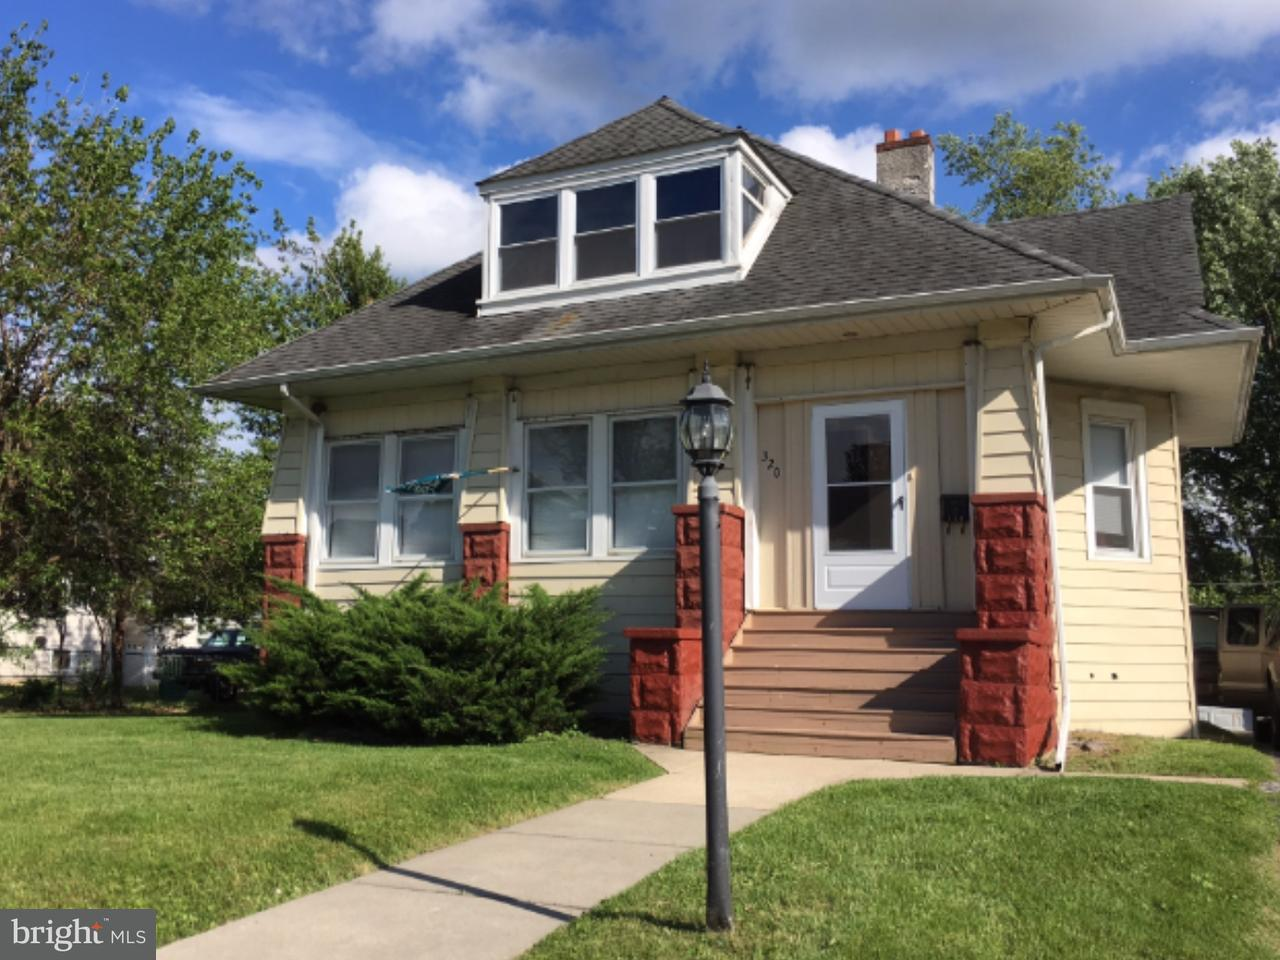 Triplex for Sale at 320 WASHINGTON TER Audubon, New Jersey 08106 United States